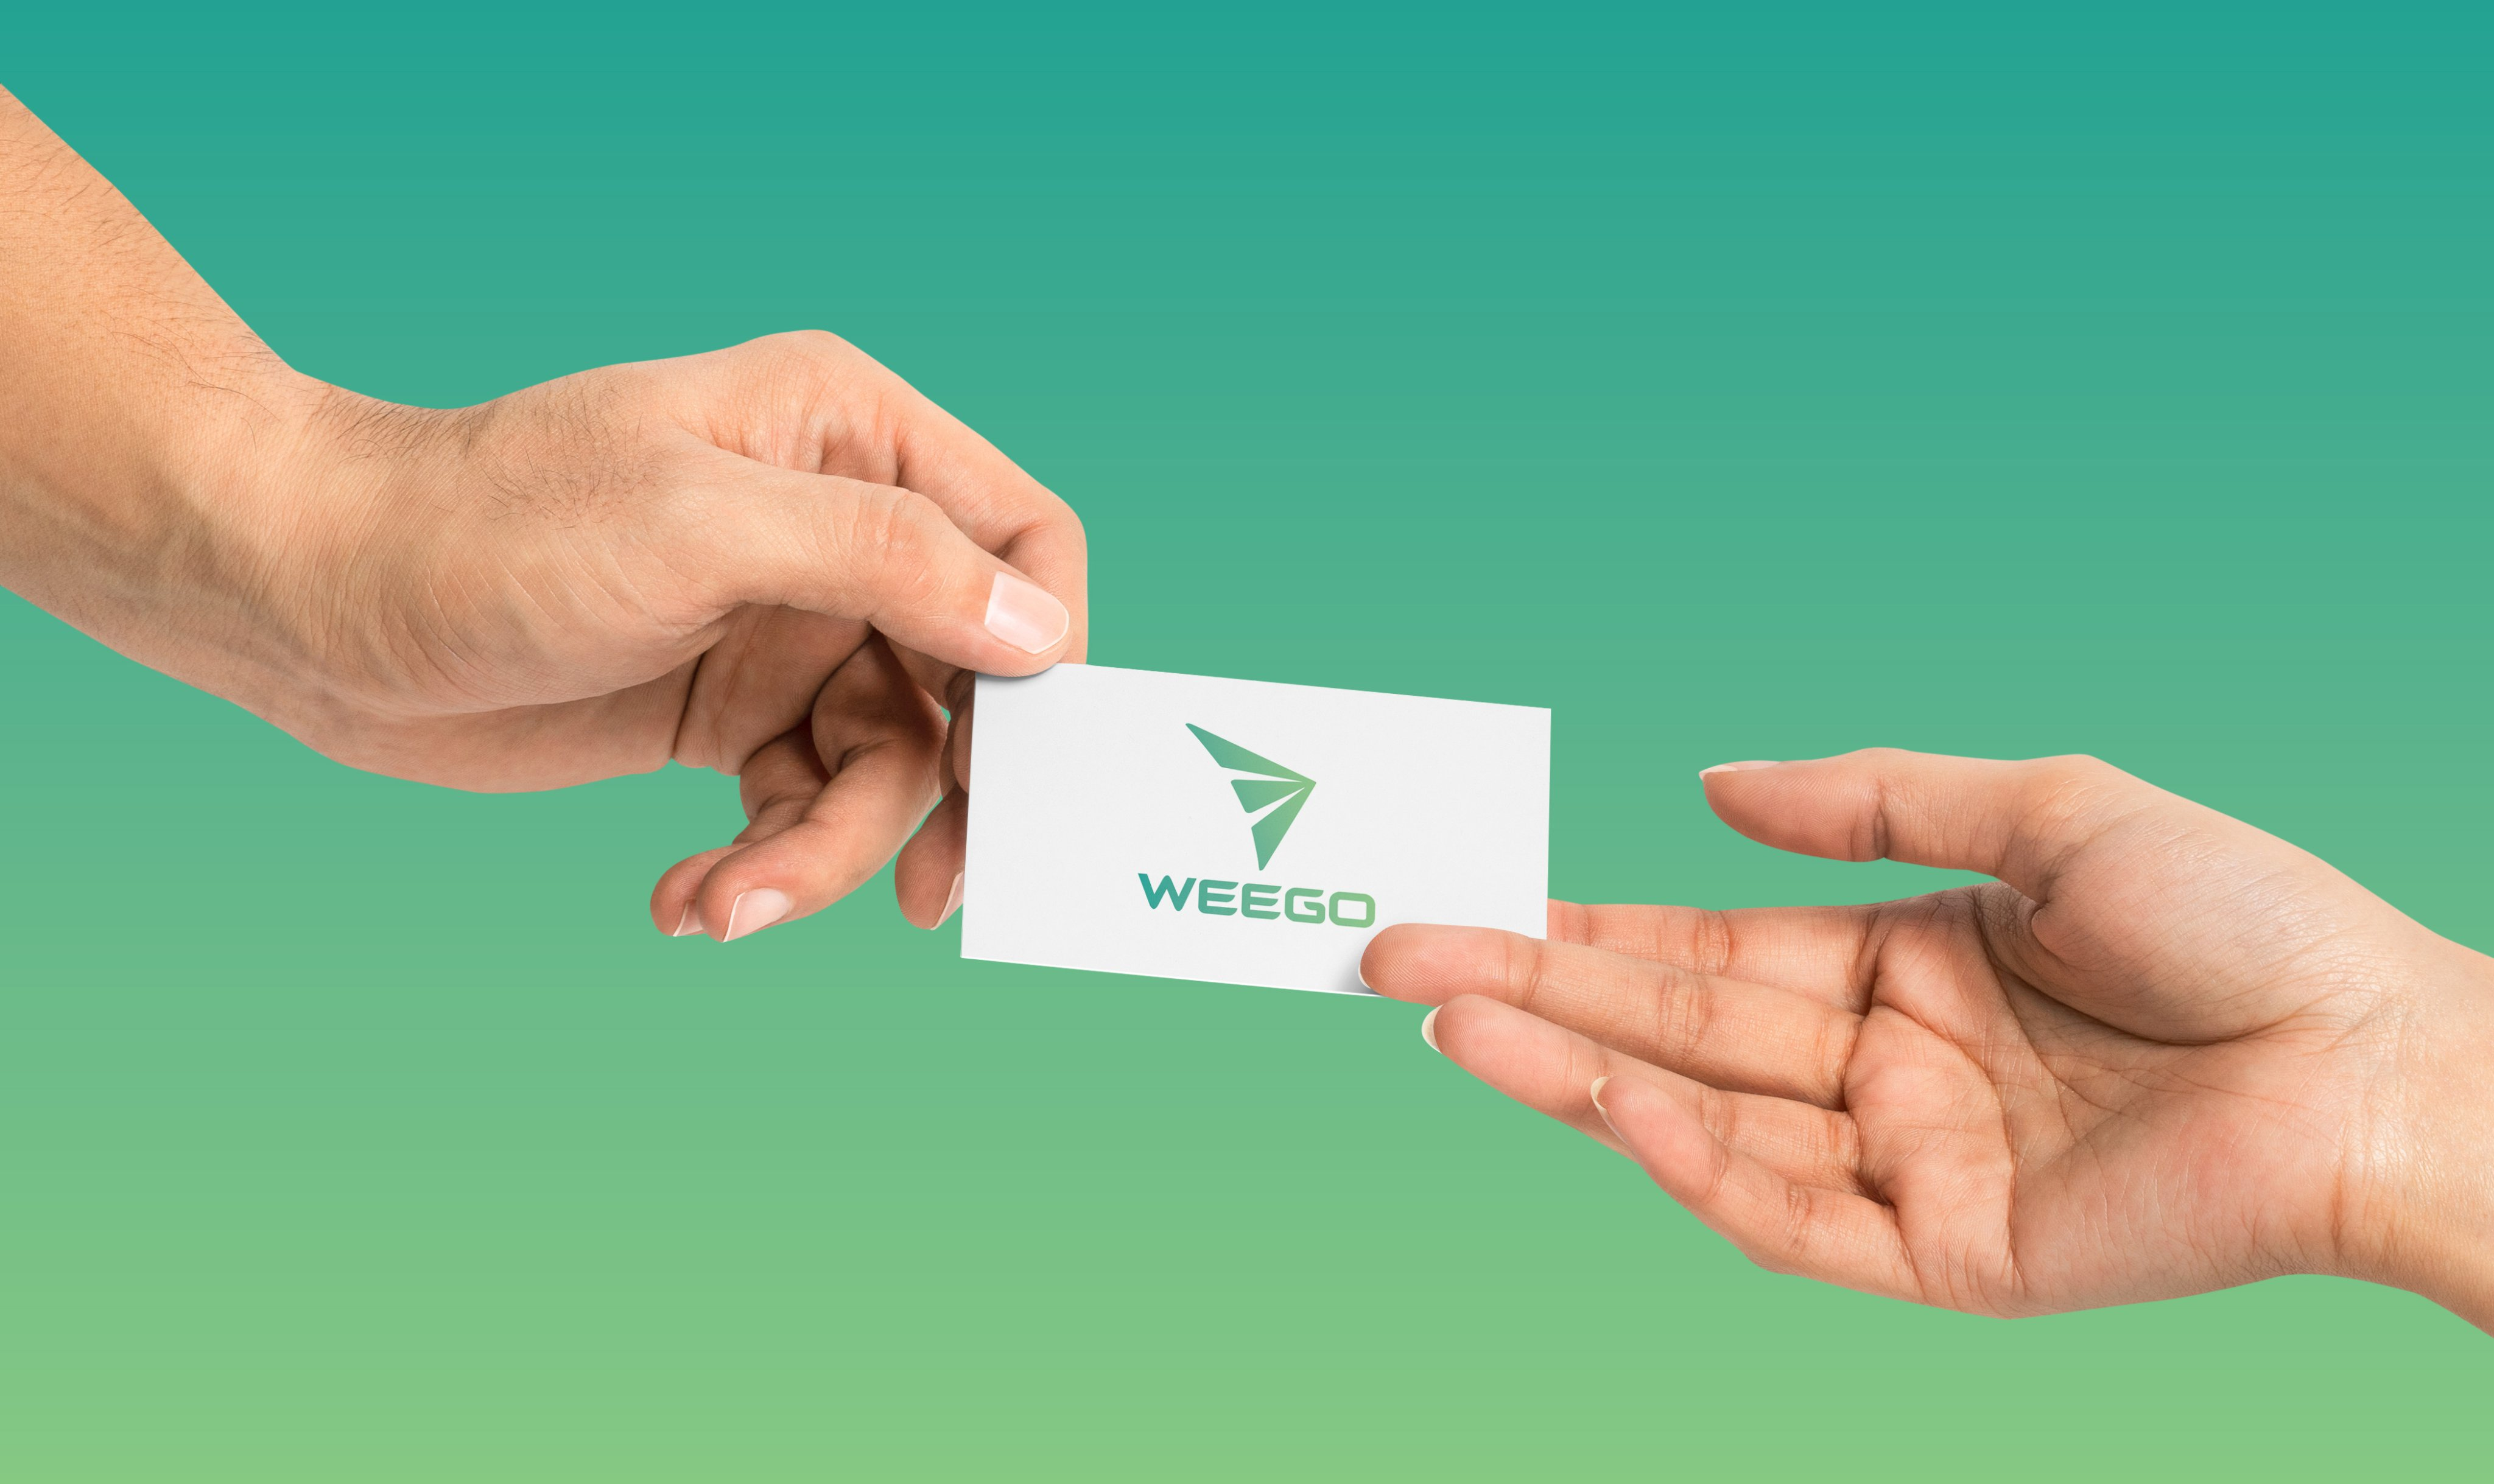 WEEGO EXPORT IMPORT JOINT STOCK COMPANY